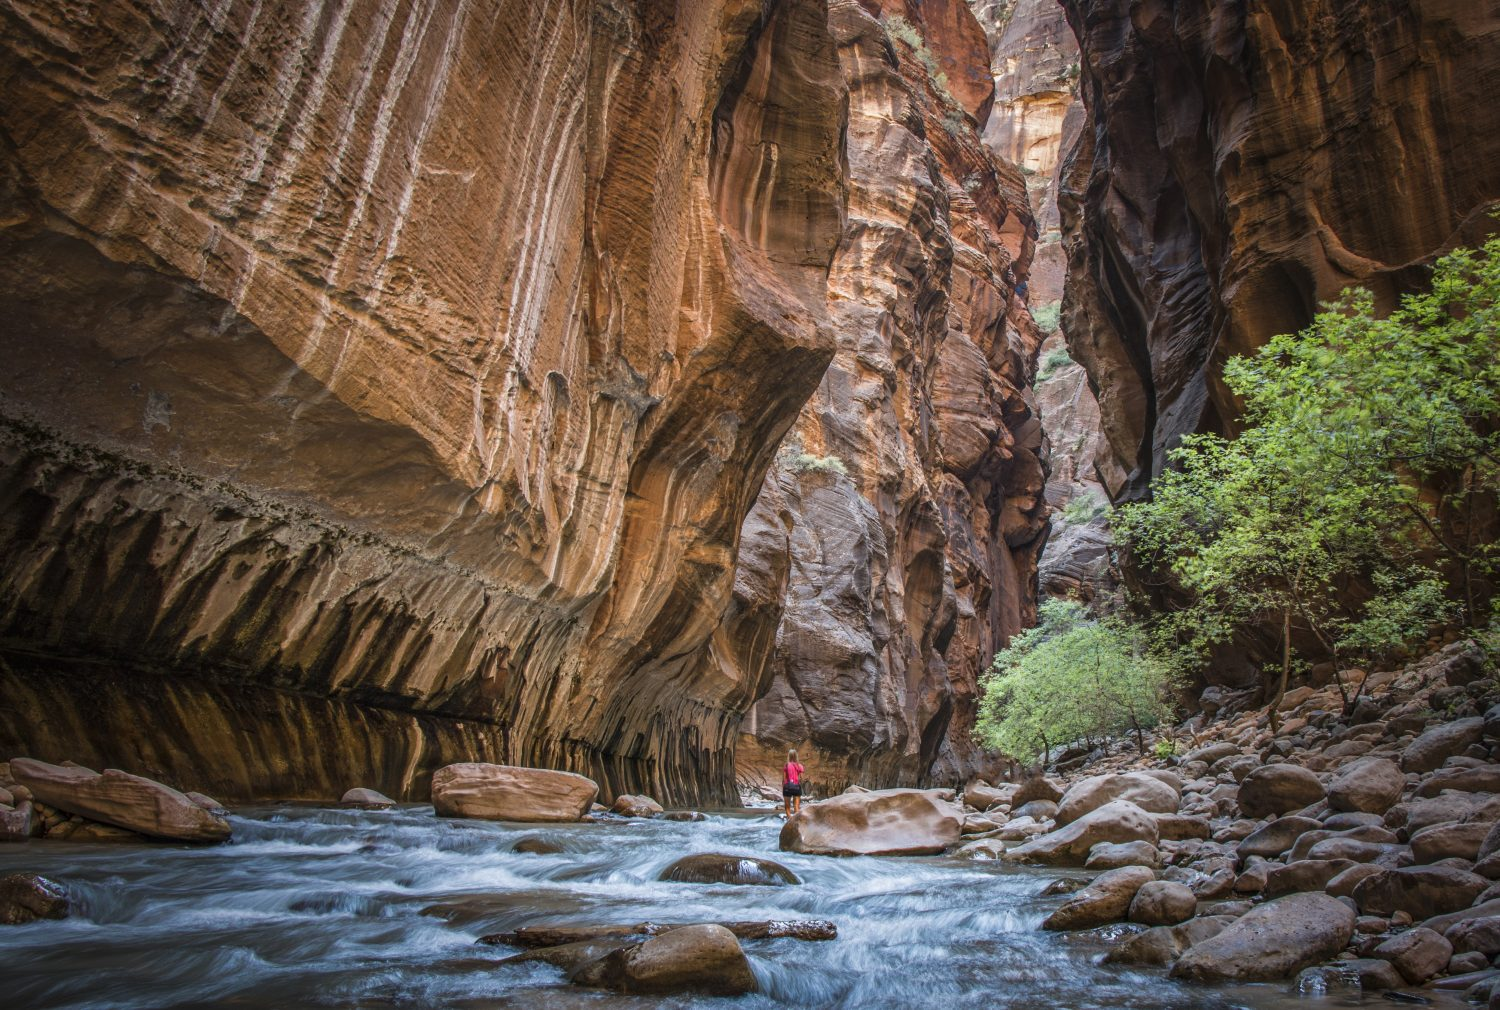 Hiking in The Narrows, Zion National Park, Utah